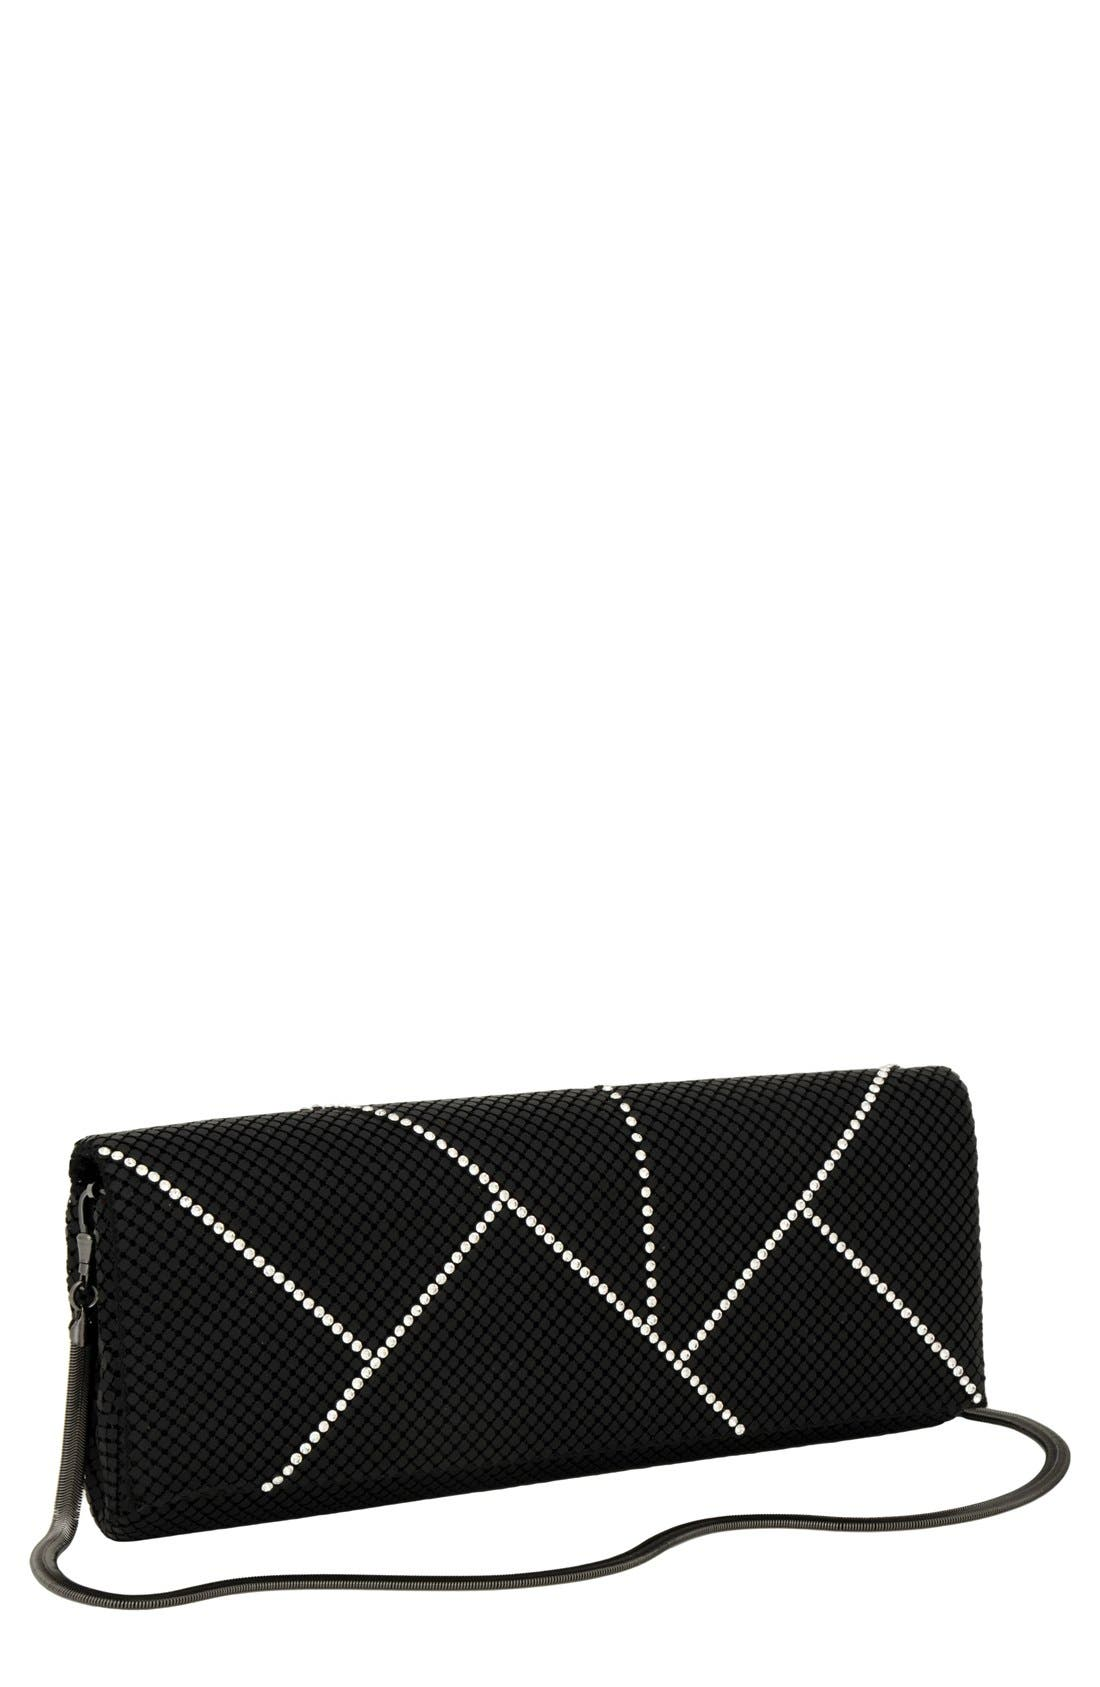 Alternate Image 1 Selected - Whiting & Davis 'Crystal Segments' Flap Clutch